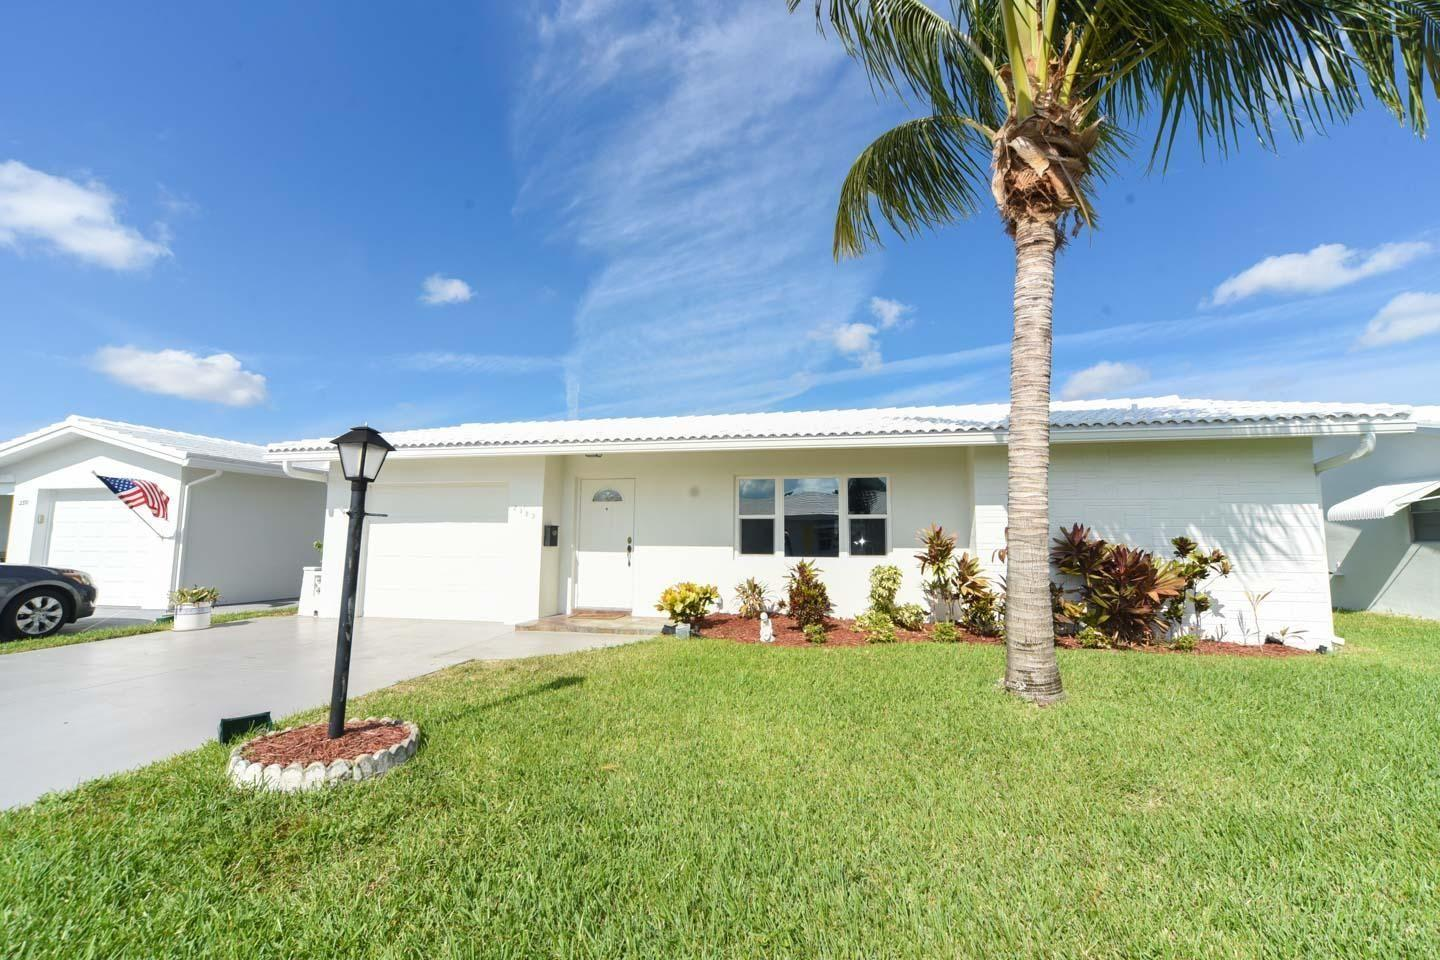 2389 SW 14th Avenue - 33426 - FL - Boynton Beach